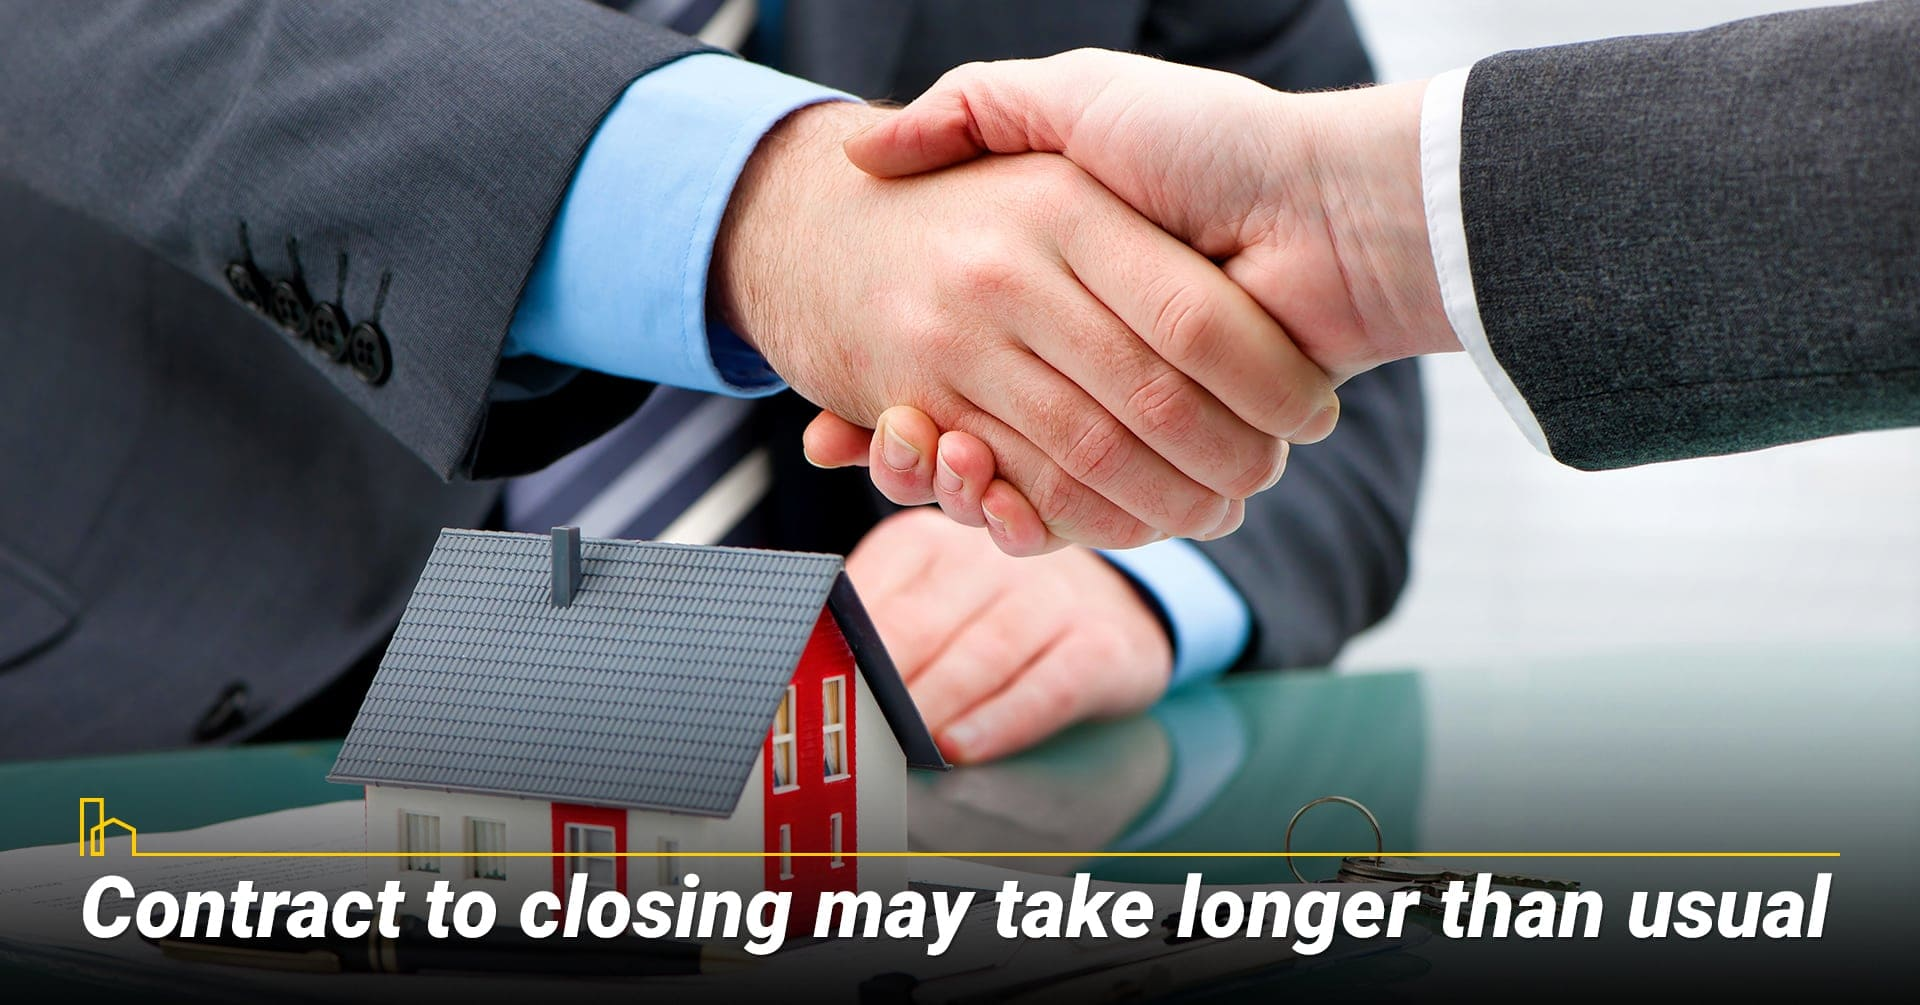 Contract to closing may take longer than usual, it may take longer to close a contract